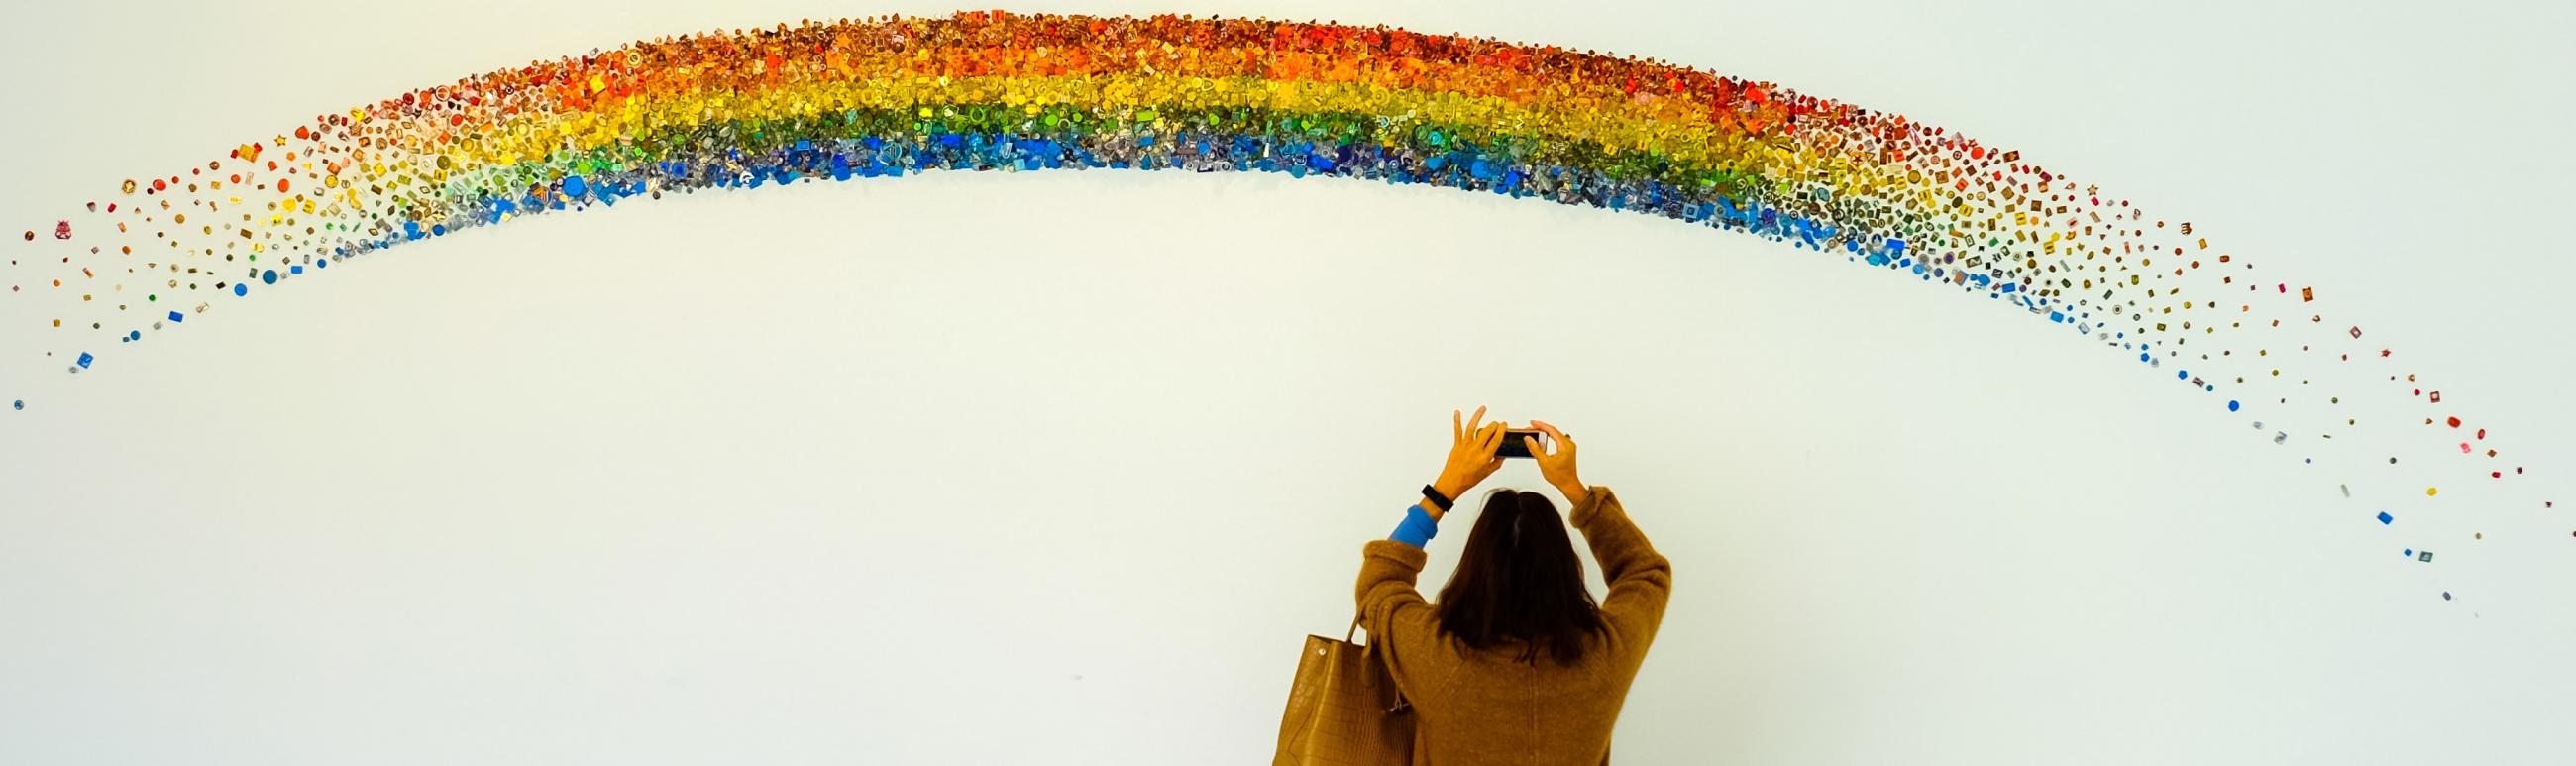 girl taking a photo of a rainbow